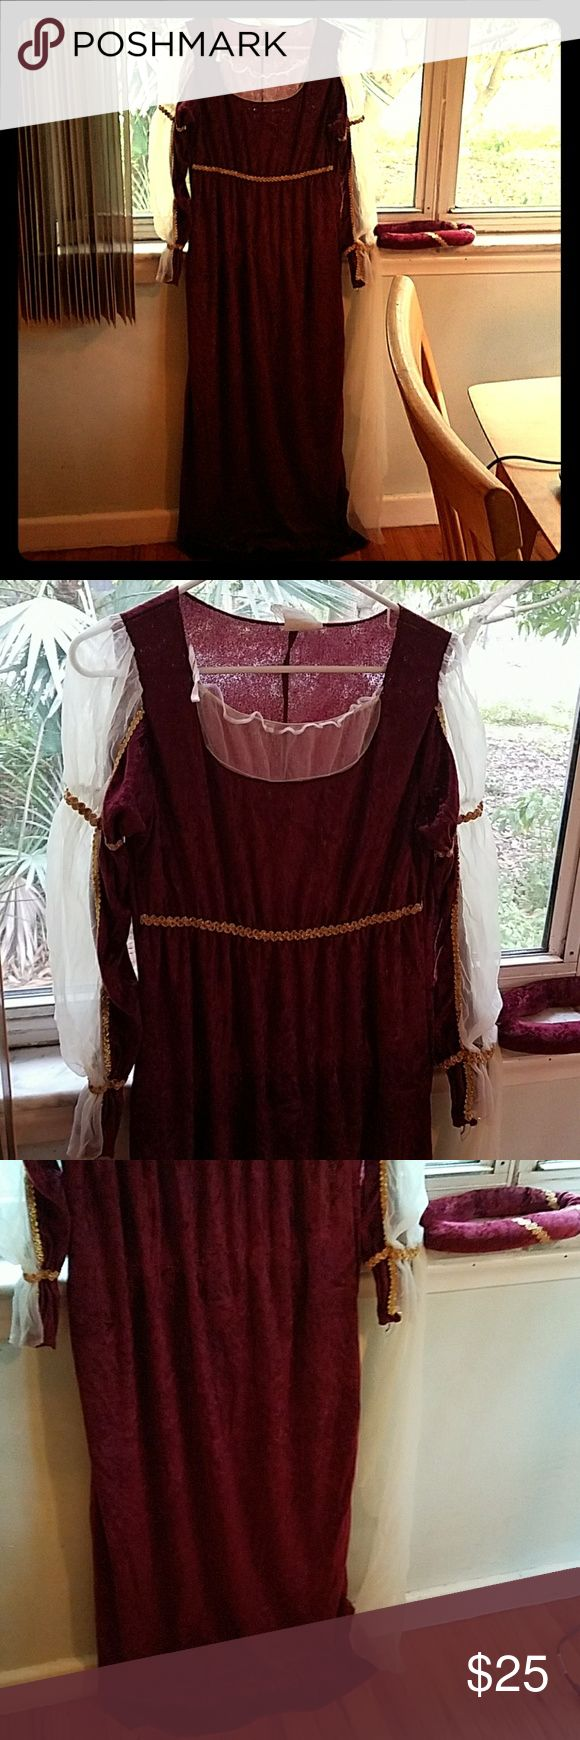 Renaissance Dress with Cloth Crown Tiara Veil Burgundy with gold trim with white sheer arms and neckline. Same material used to make the headdress. Only worn once. Perfect for Renaissance Fairs or Halloween! California Costume Collections Dresses Long Sleeve